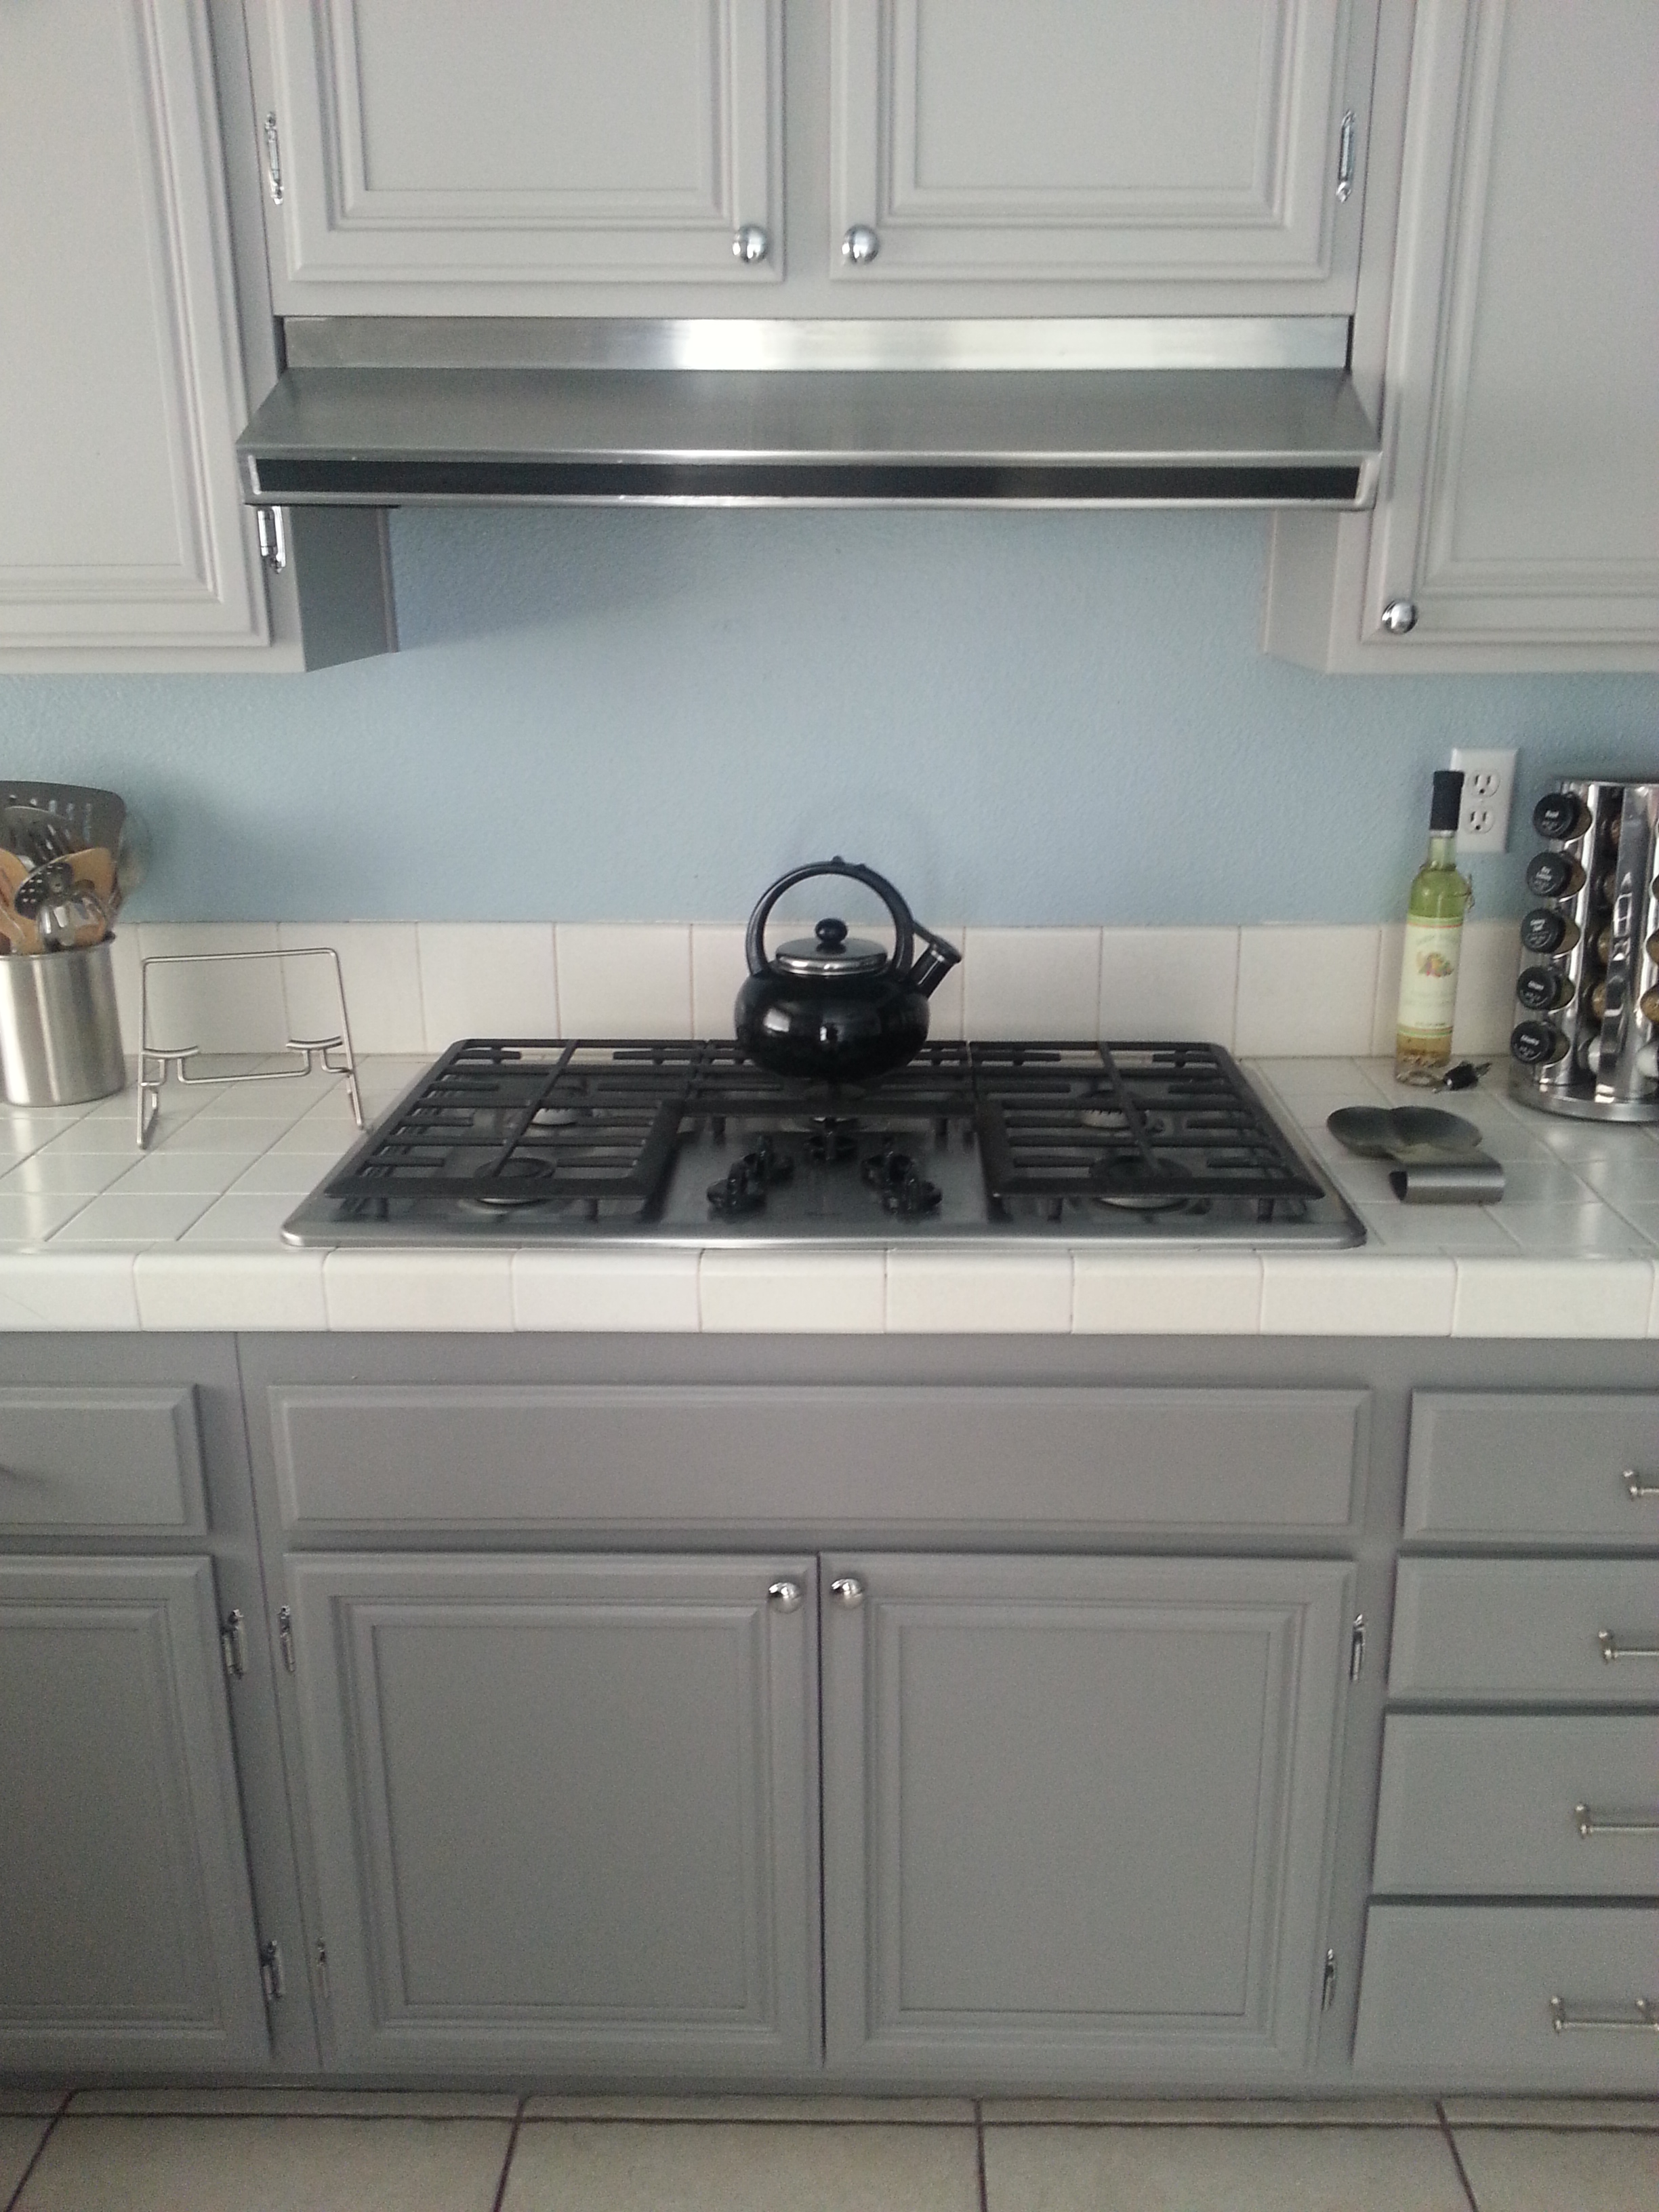 Stove install overall